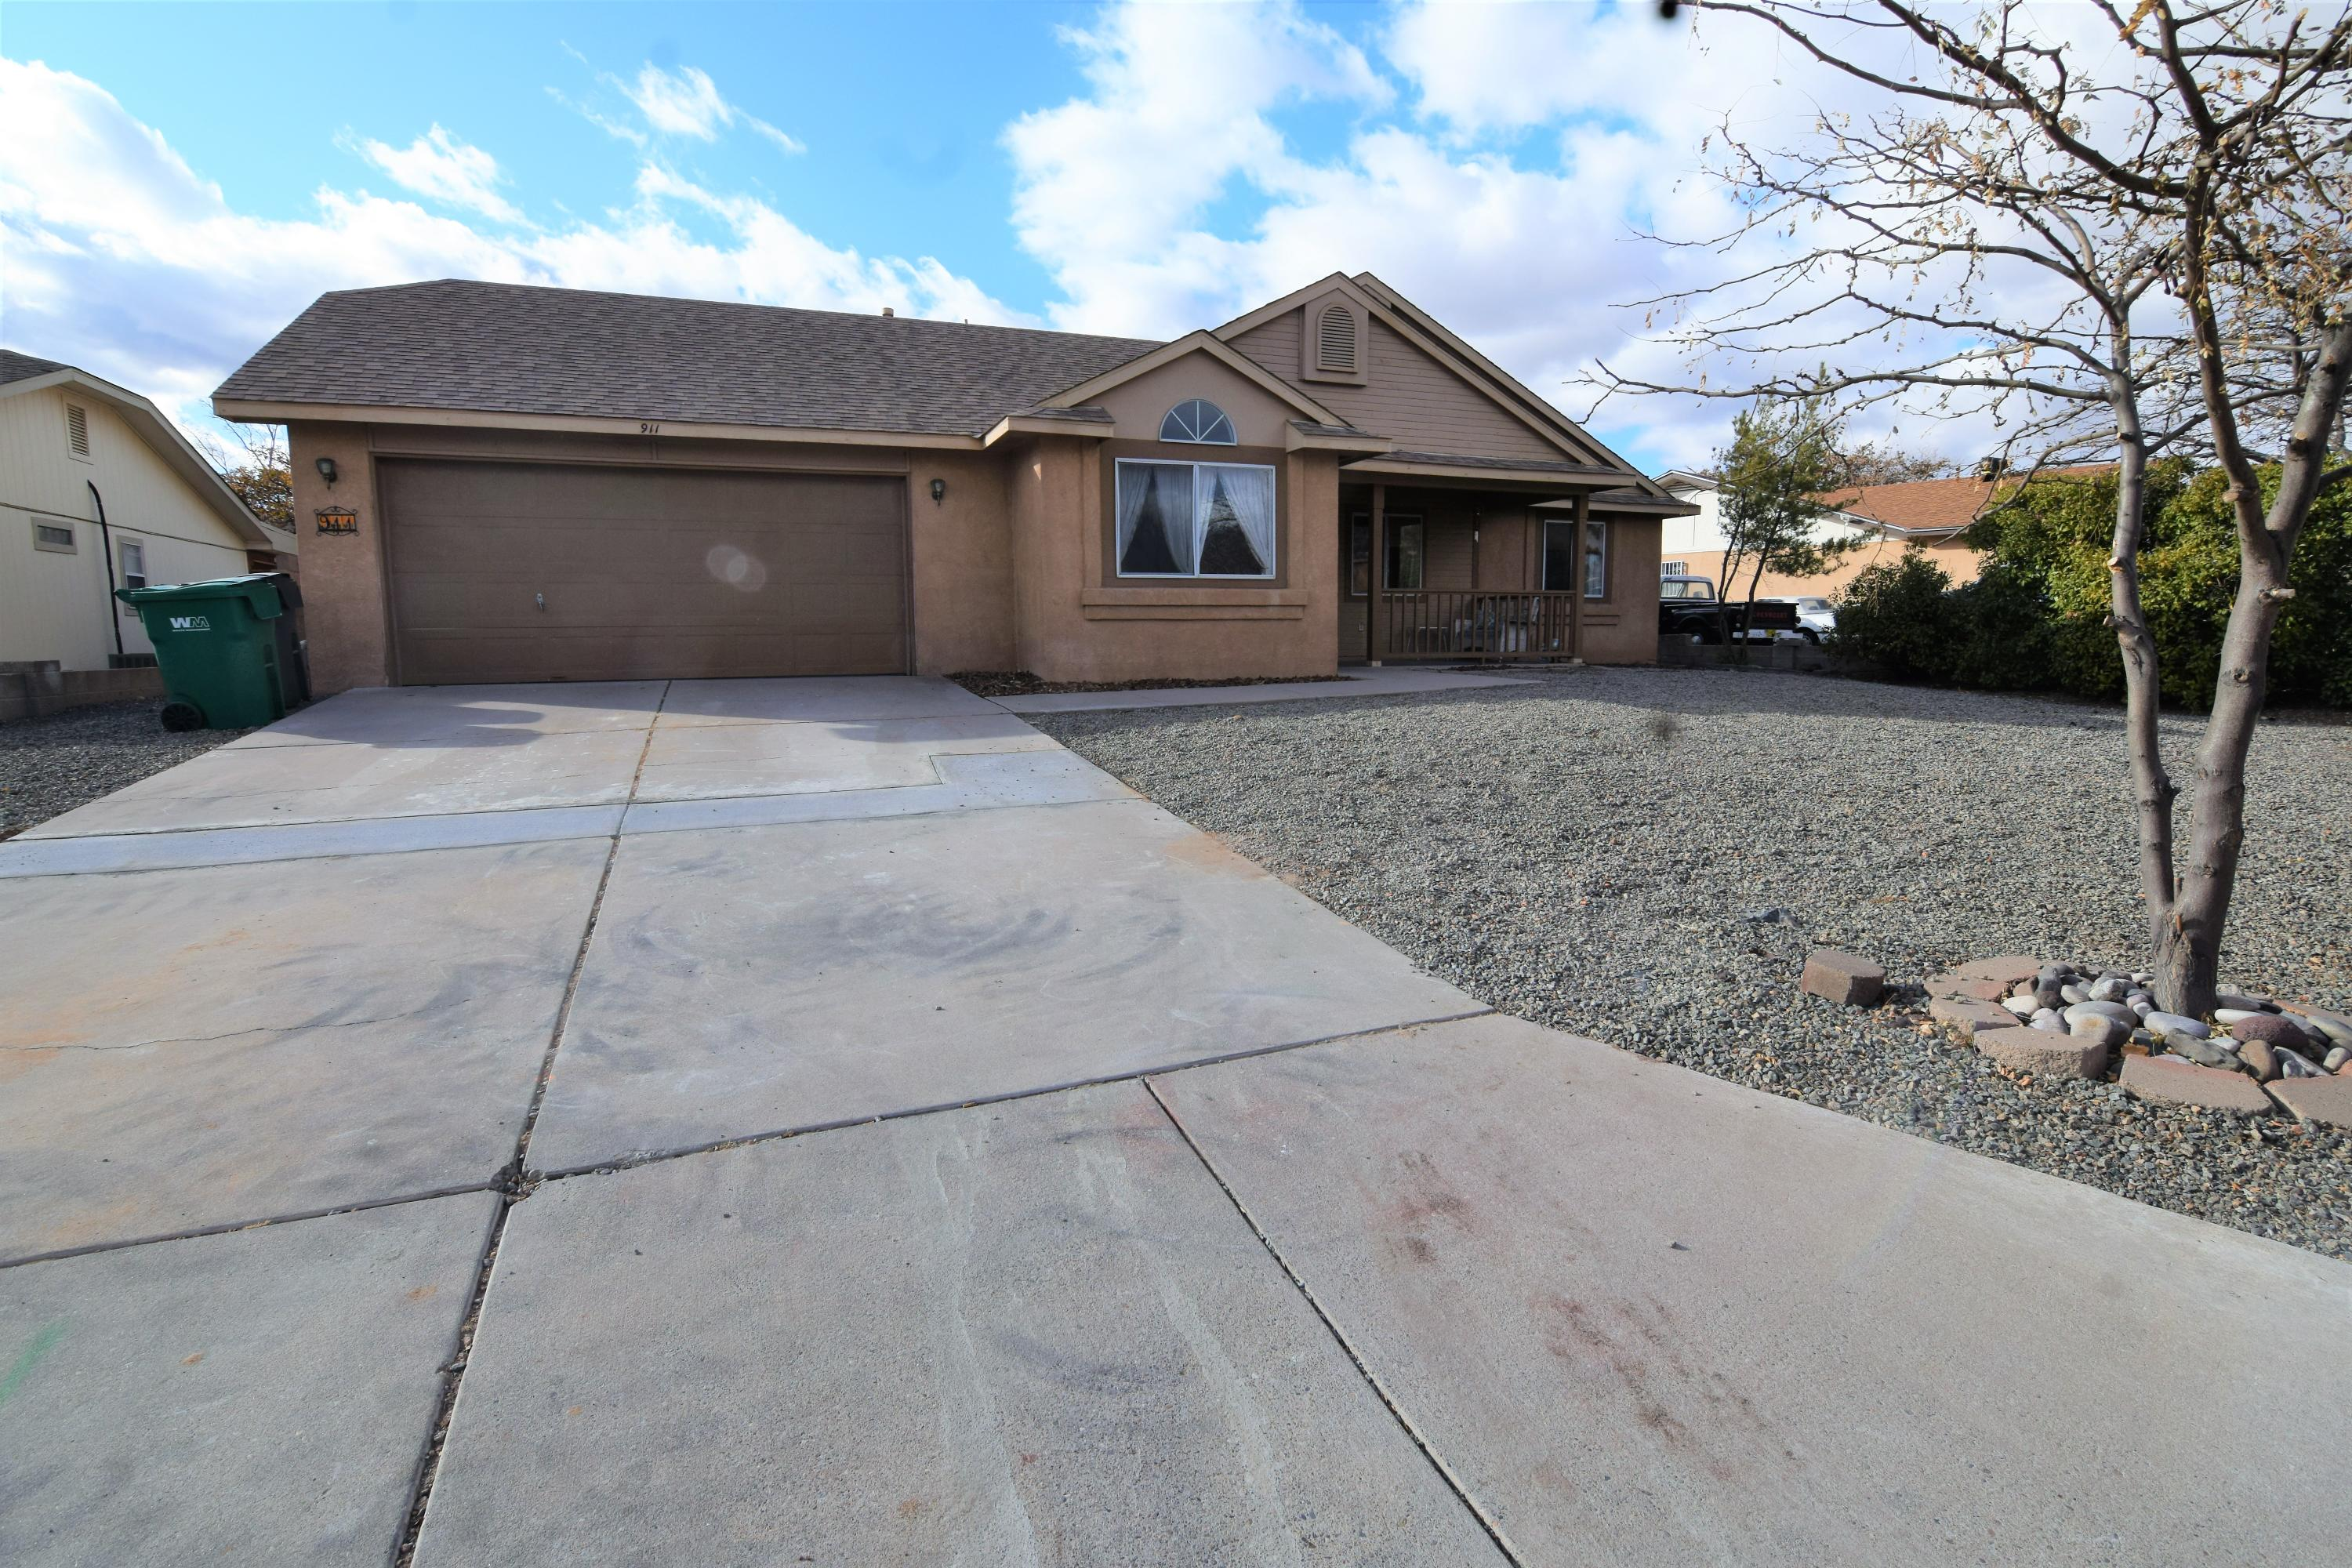 Charming bungalow in Western Hills with mountain and city views!  Close to shopping, dining and entertainment!  Large backyard with covered patio!Updated kitchen, new dishwasher and water heater(2018) and updated flooring. Large living area  NO POLYBUTYLENE  PIPE (11/2020) This one will sell FAST!